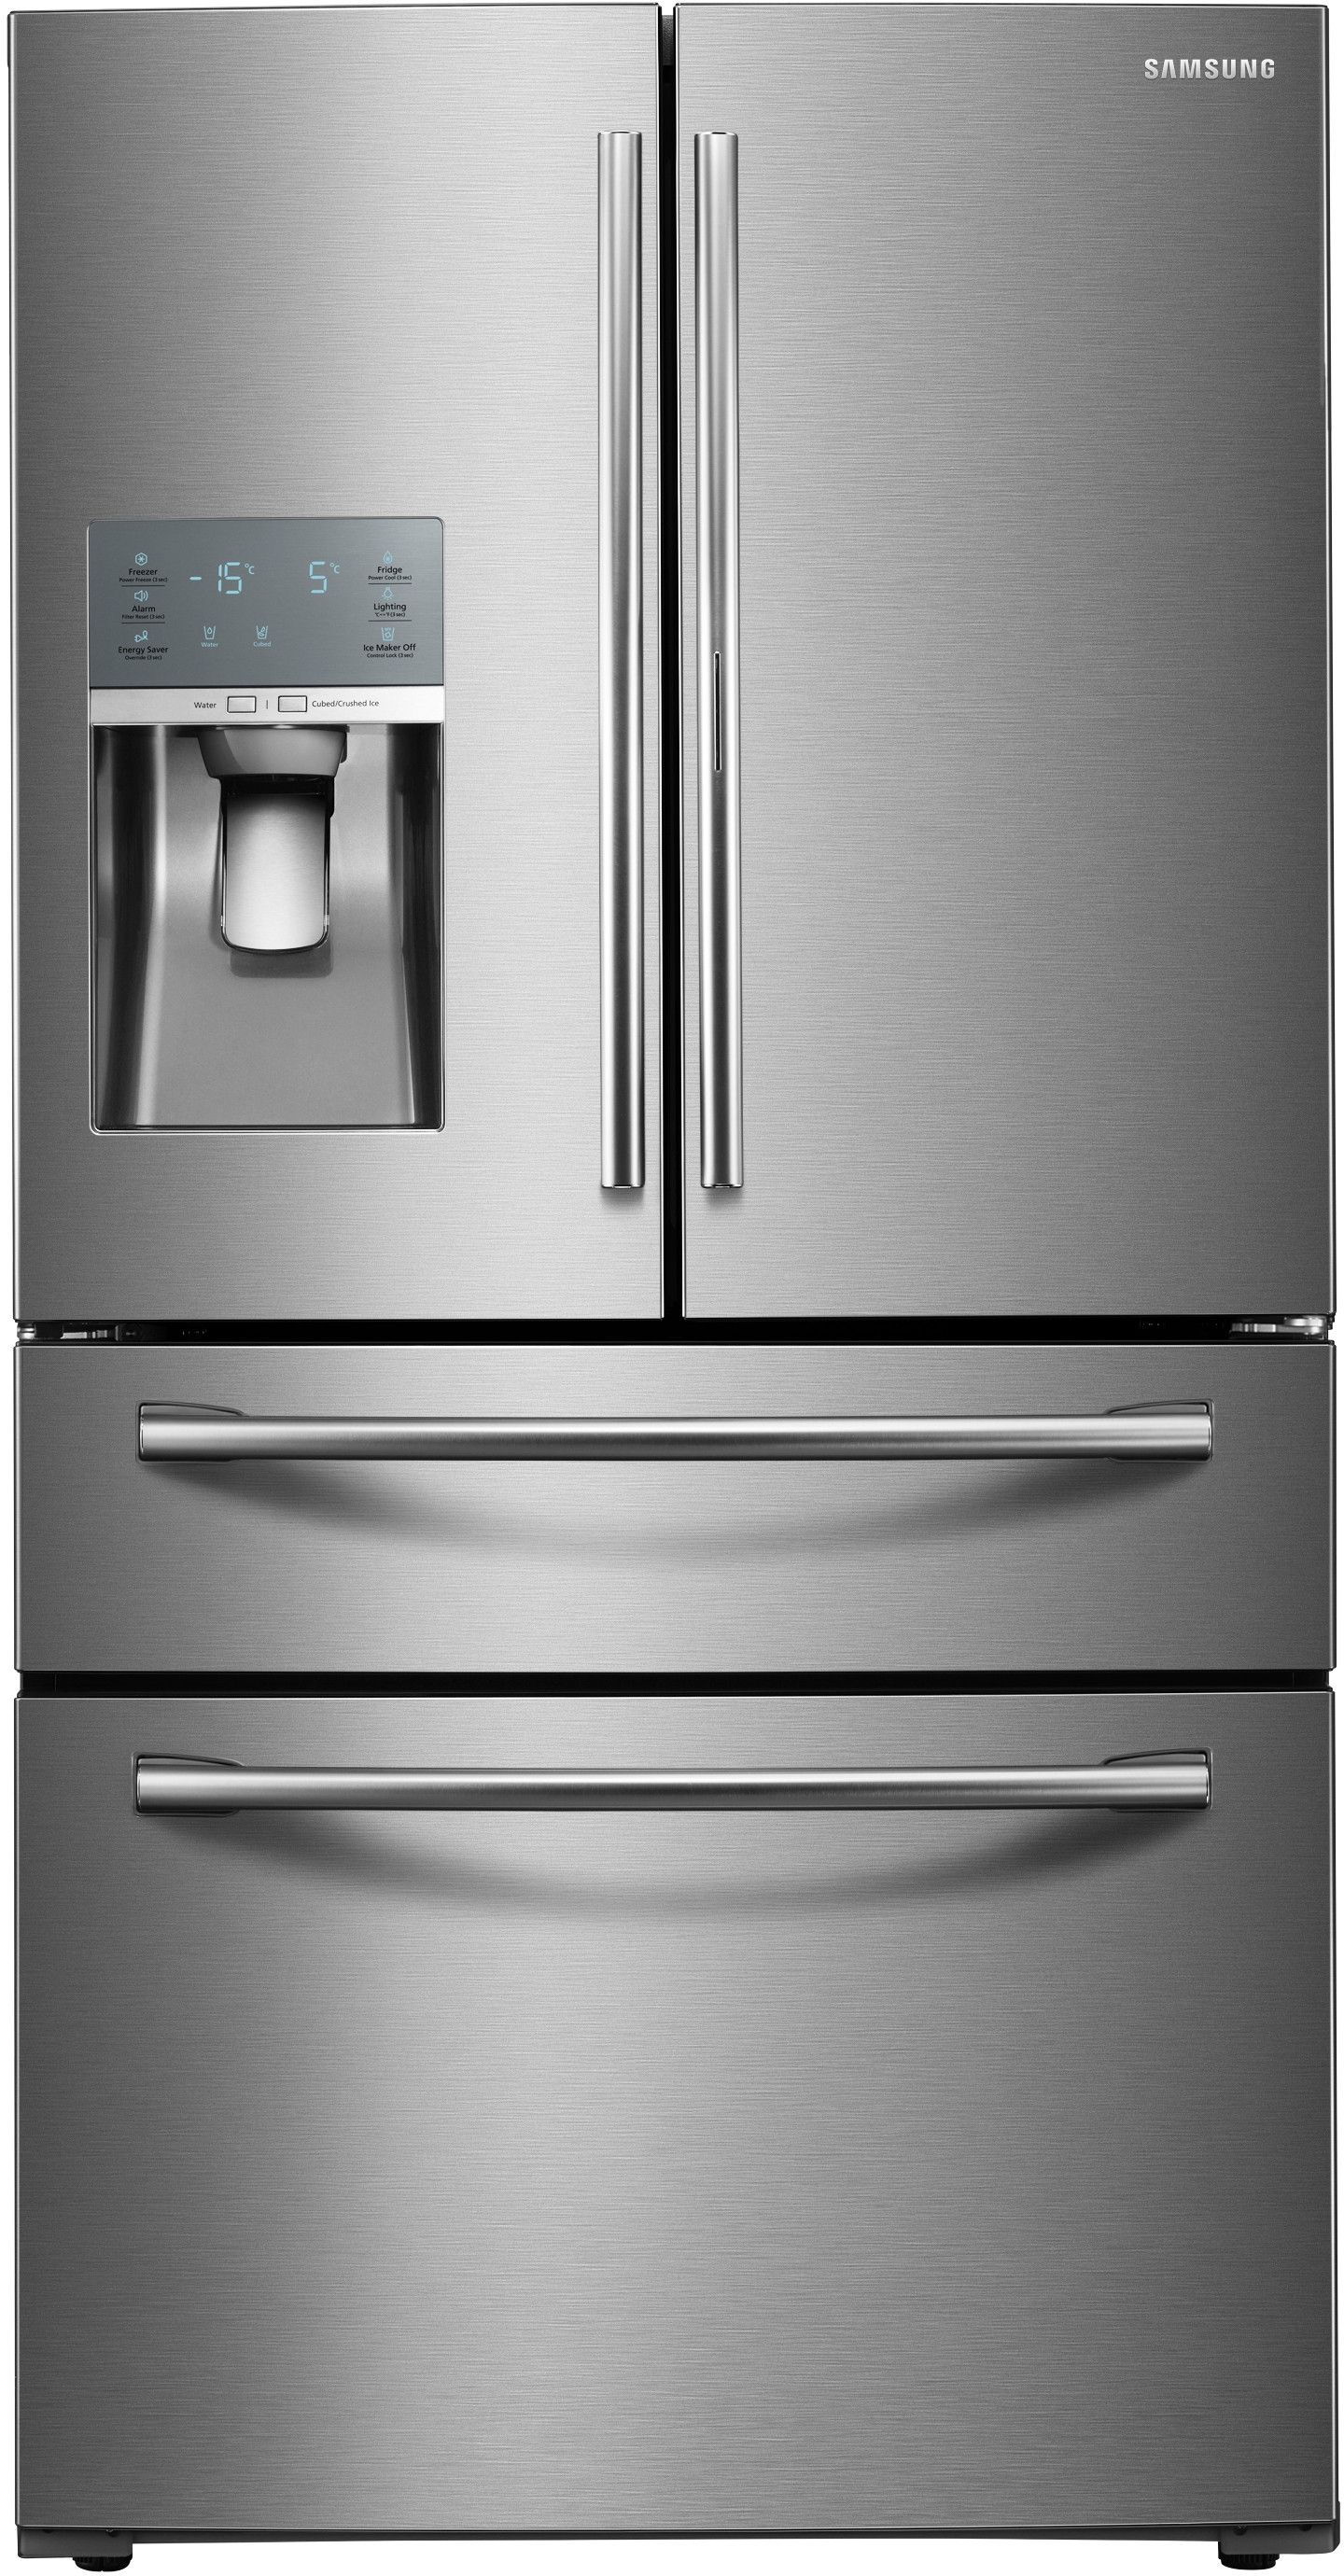 Samsung Double Door Fridge With Ice Maker Samsung Refrigerator